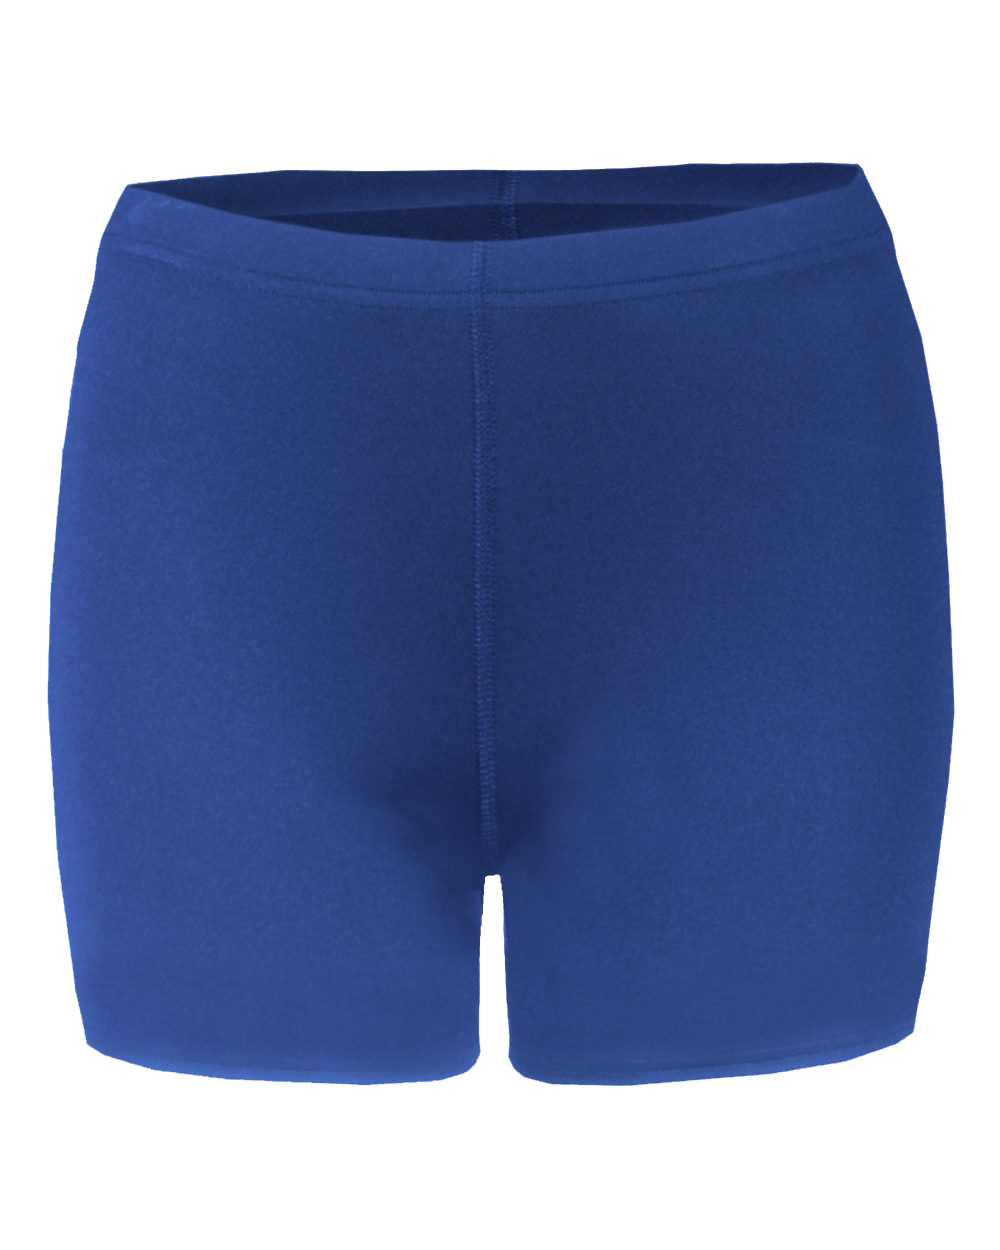 Compression Women's 4 Inch Short - Royal